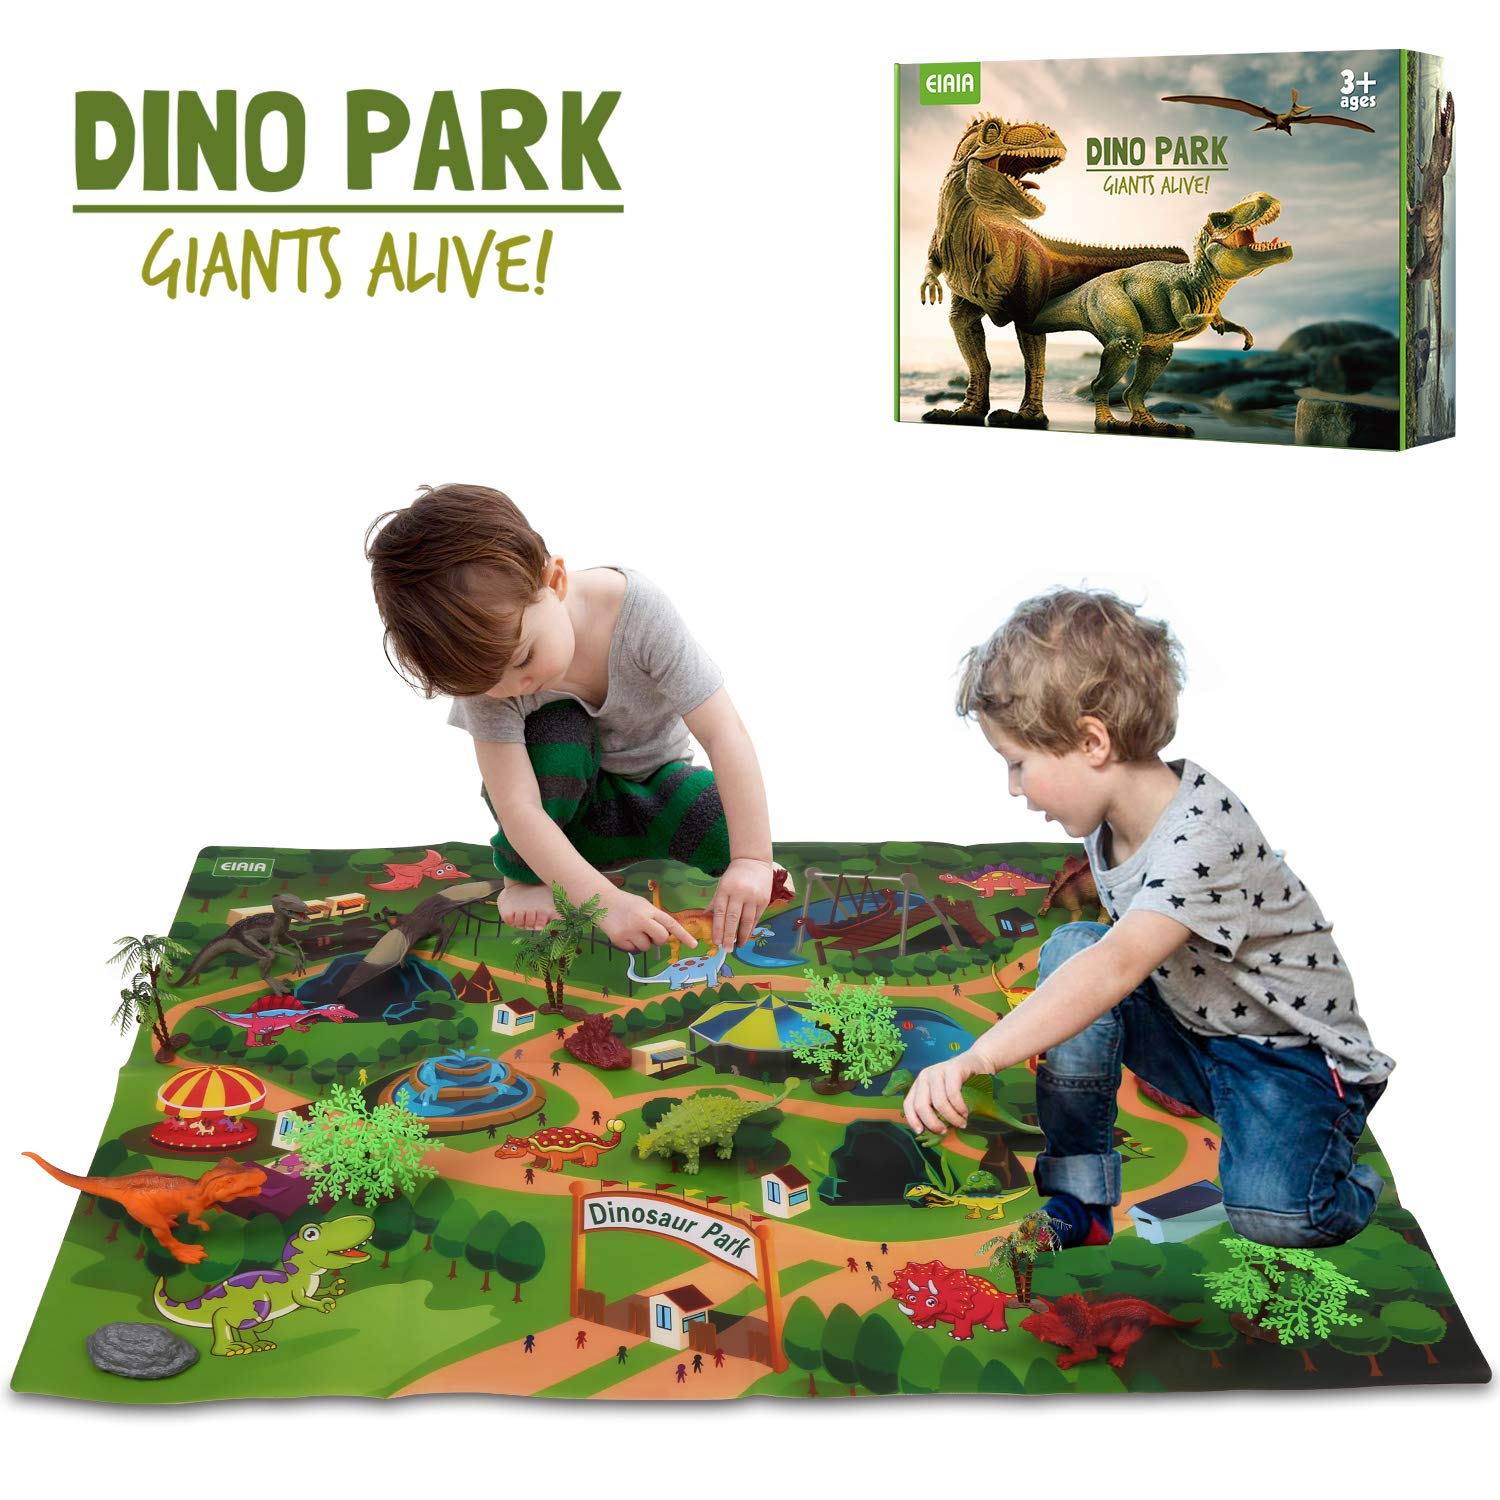 EIAIA Dinosaur Toys w/ Activity Play Mat Trees Rocks to Create A Dino World, Educational Realistic Dinosaur Figures Playset Including T-Rex, Triceratops, Velociraptor, Best Gifts for Kids Boys & Girls by EIAIA